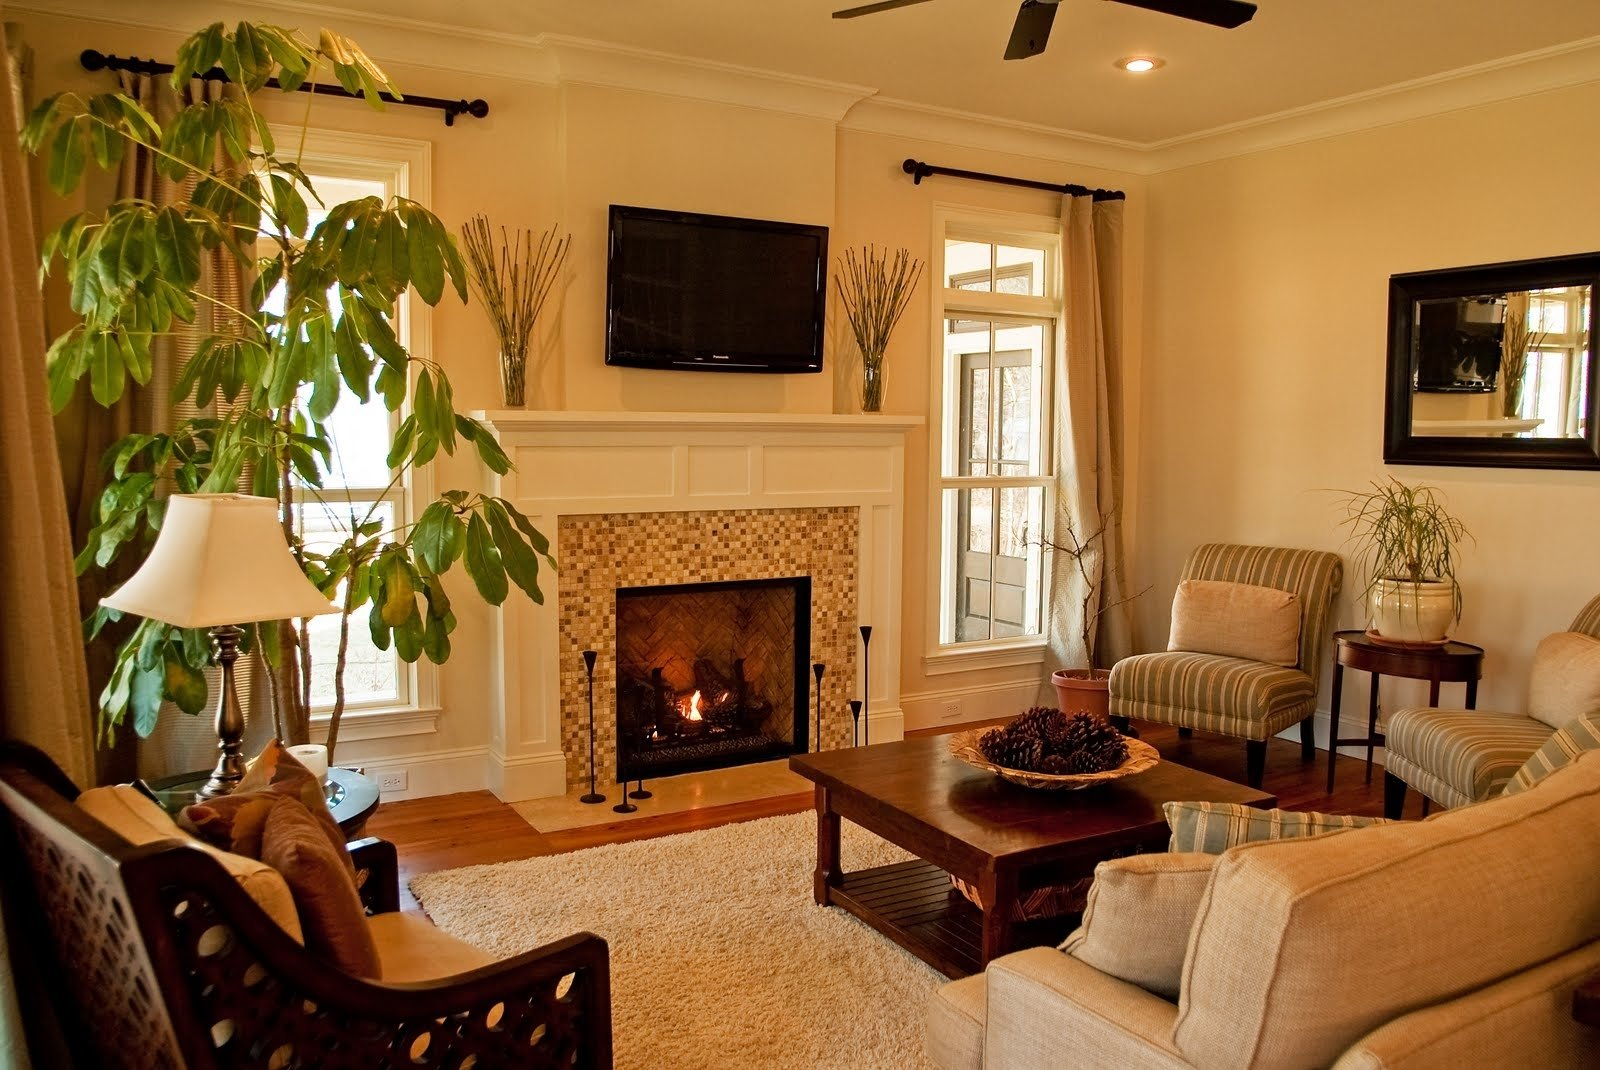 10 Elegant Living Room Ideas With Fireplace the incredible along with interesting decorating ideas for living 2021